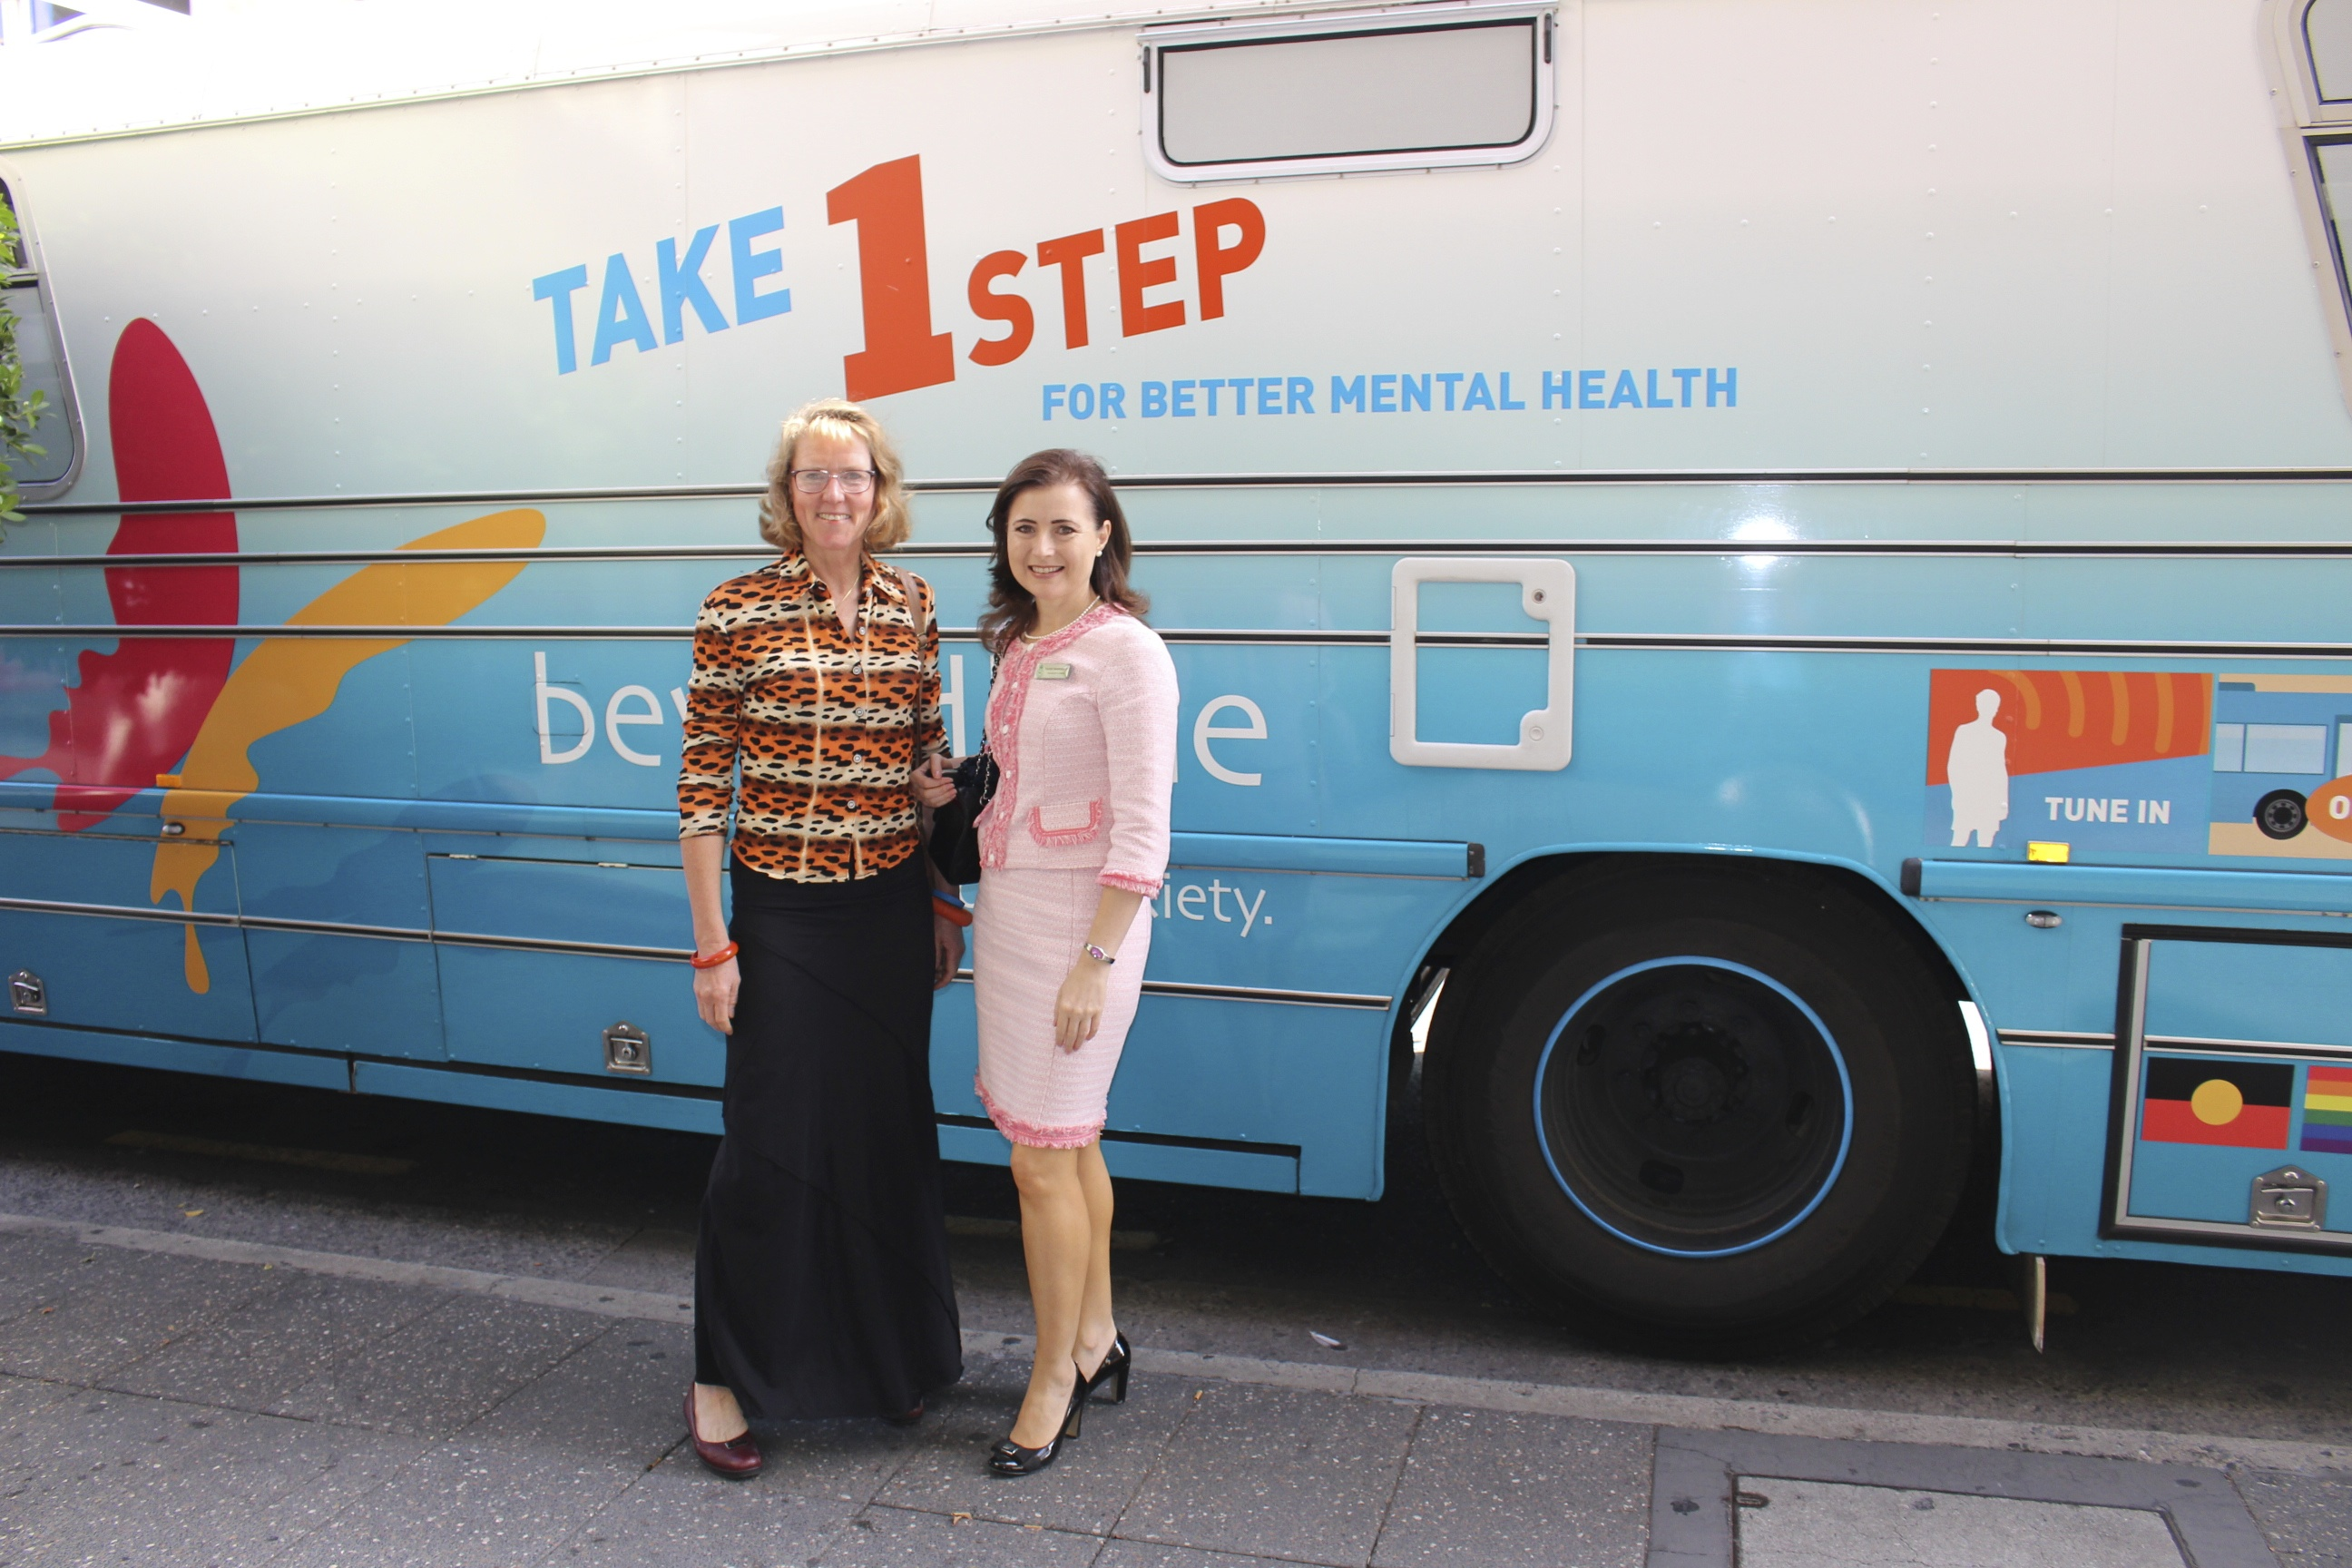 Beyond Blue Ambassador Mary Jo Fisher and Adelaide MP Rachel Sanderson visited the bus in Adelaide: SA.